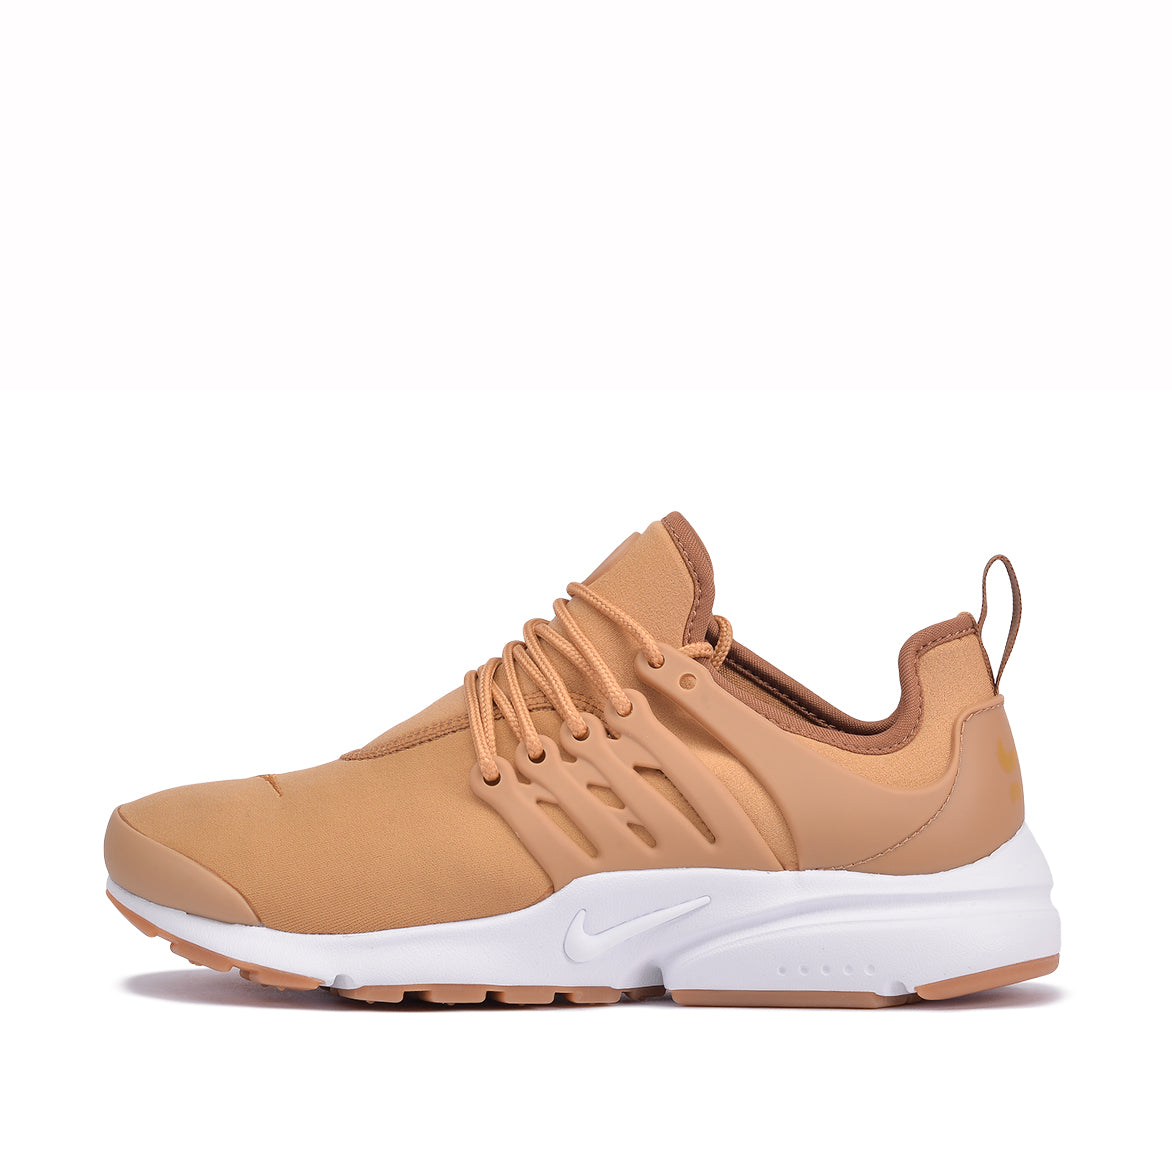 cheap for discount ee352 648d3 WMNS AIR PRESTO - ELEMENTAL GOLD